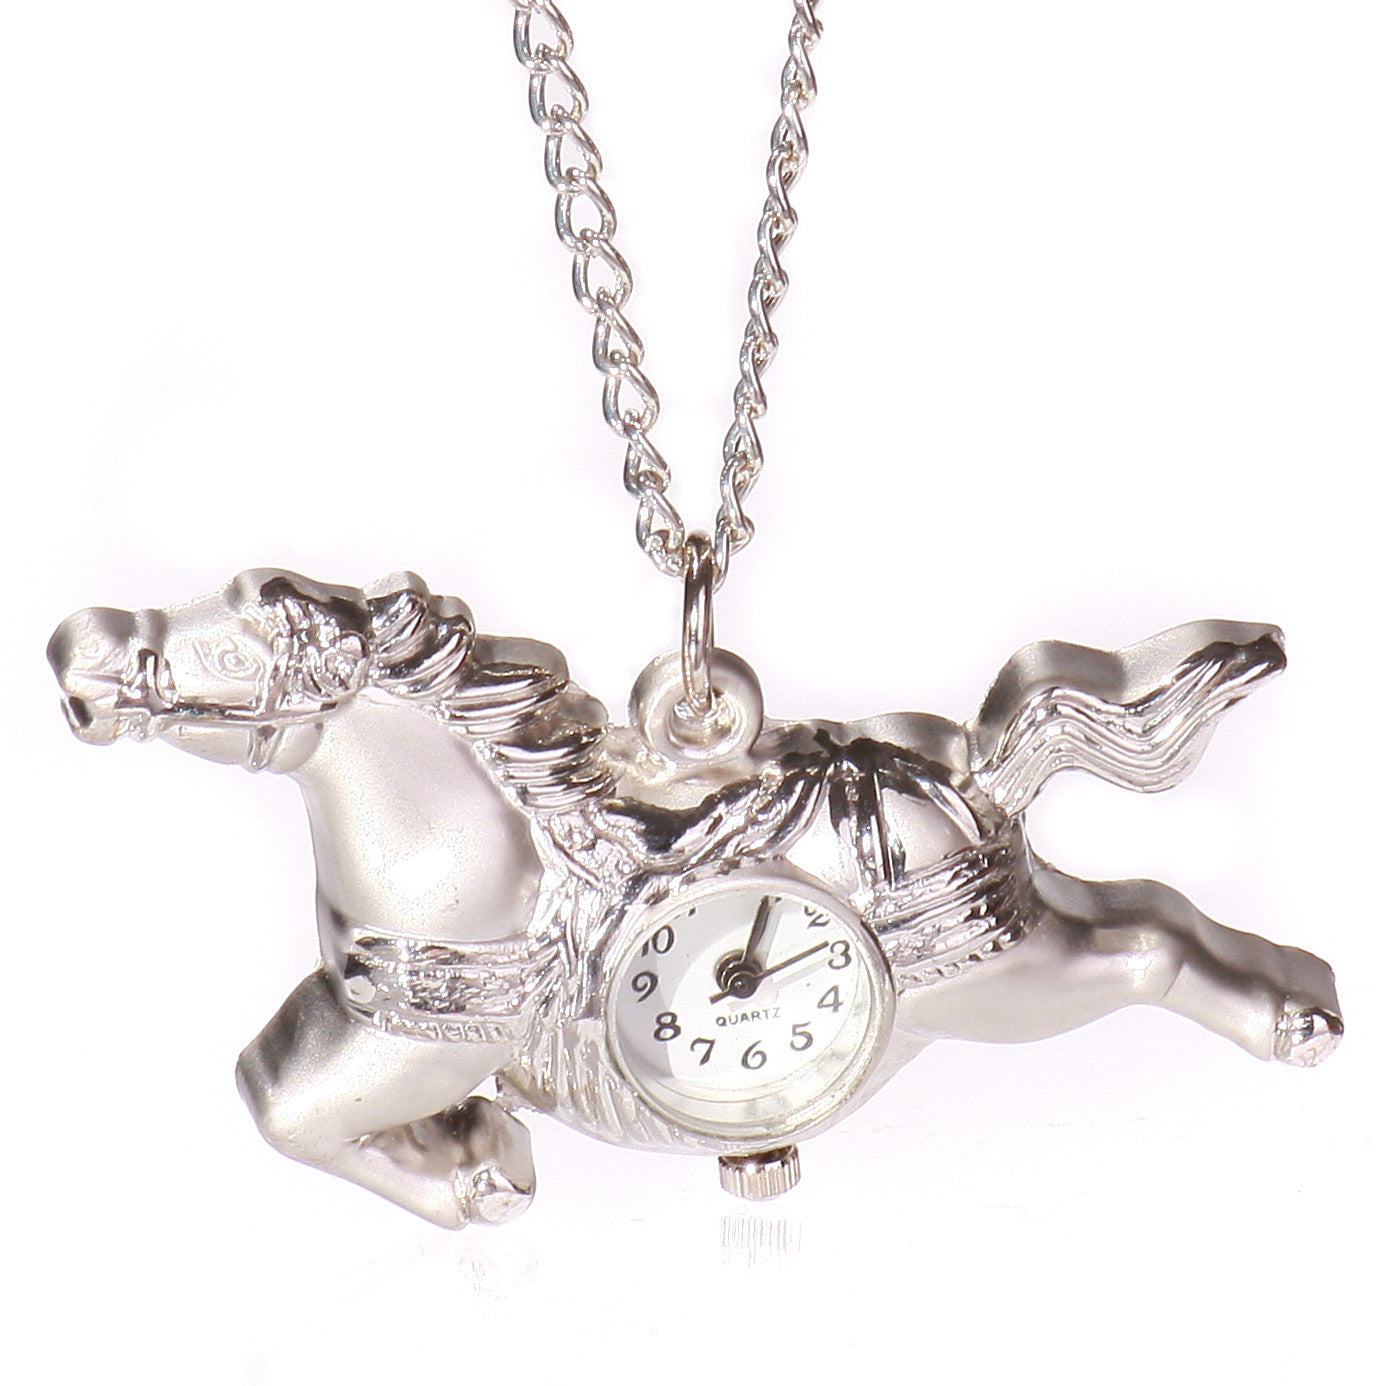 Special Silver Edition Time To Ride Pocket Watch Necklace - One Cool Gift  - 1